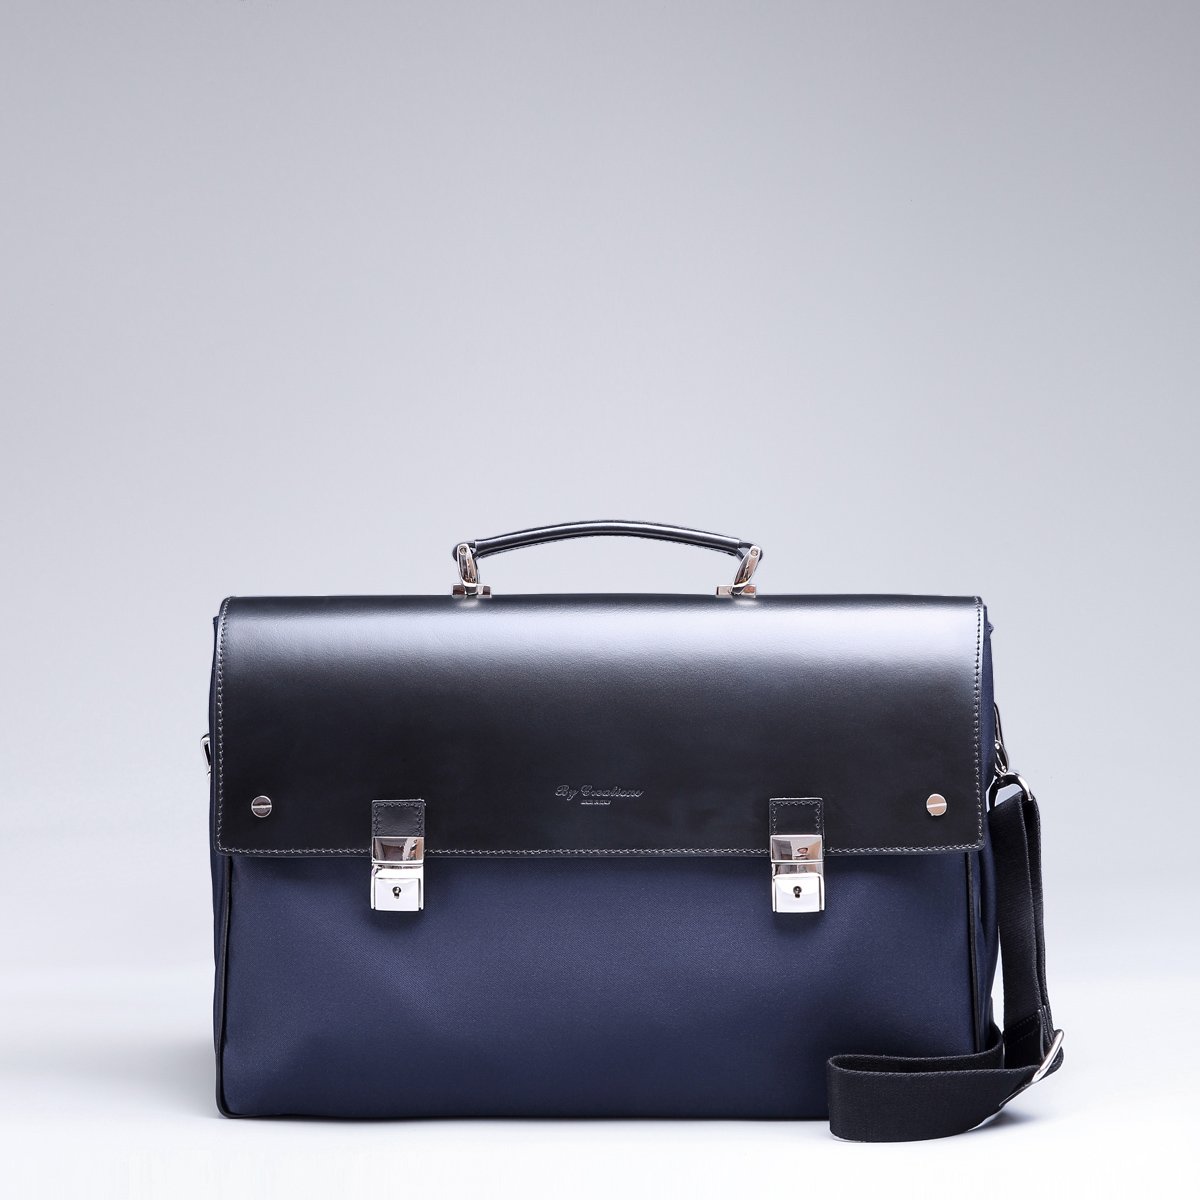 Italian handmade by creations parker products light luxury business briefcase messenger bag portable briefcase